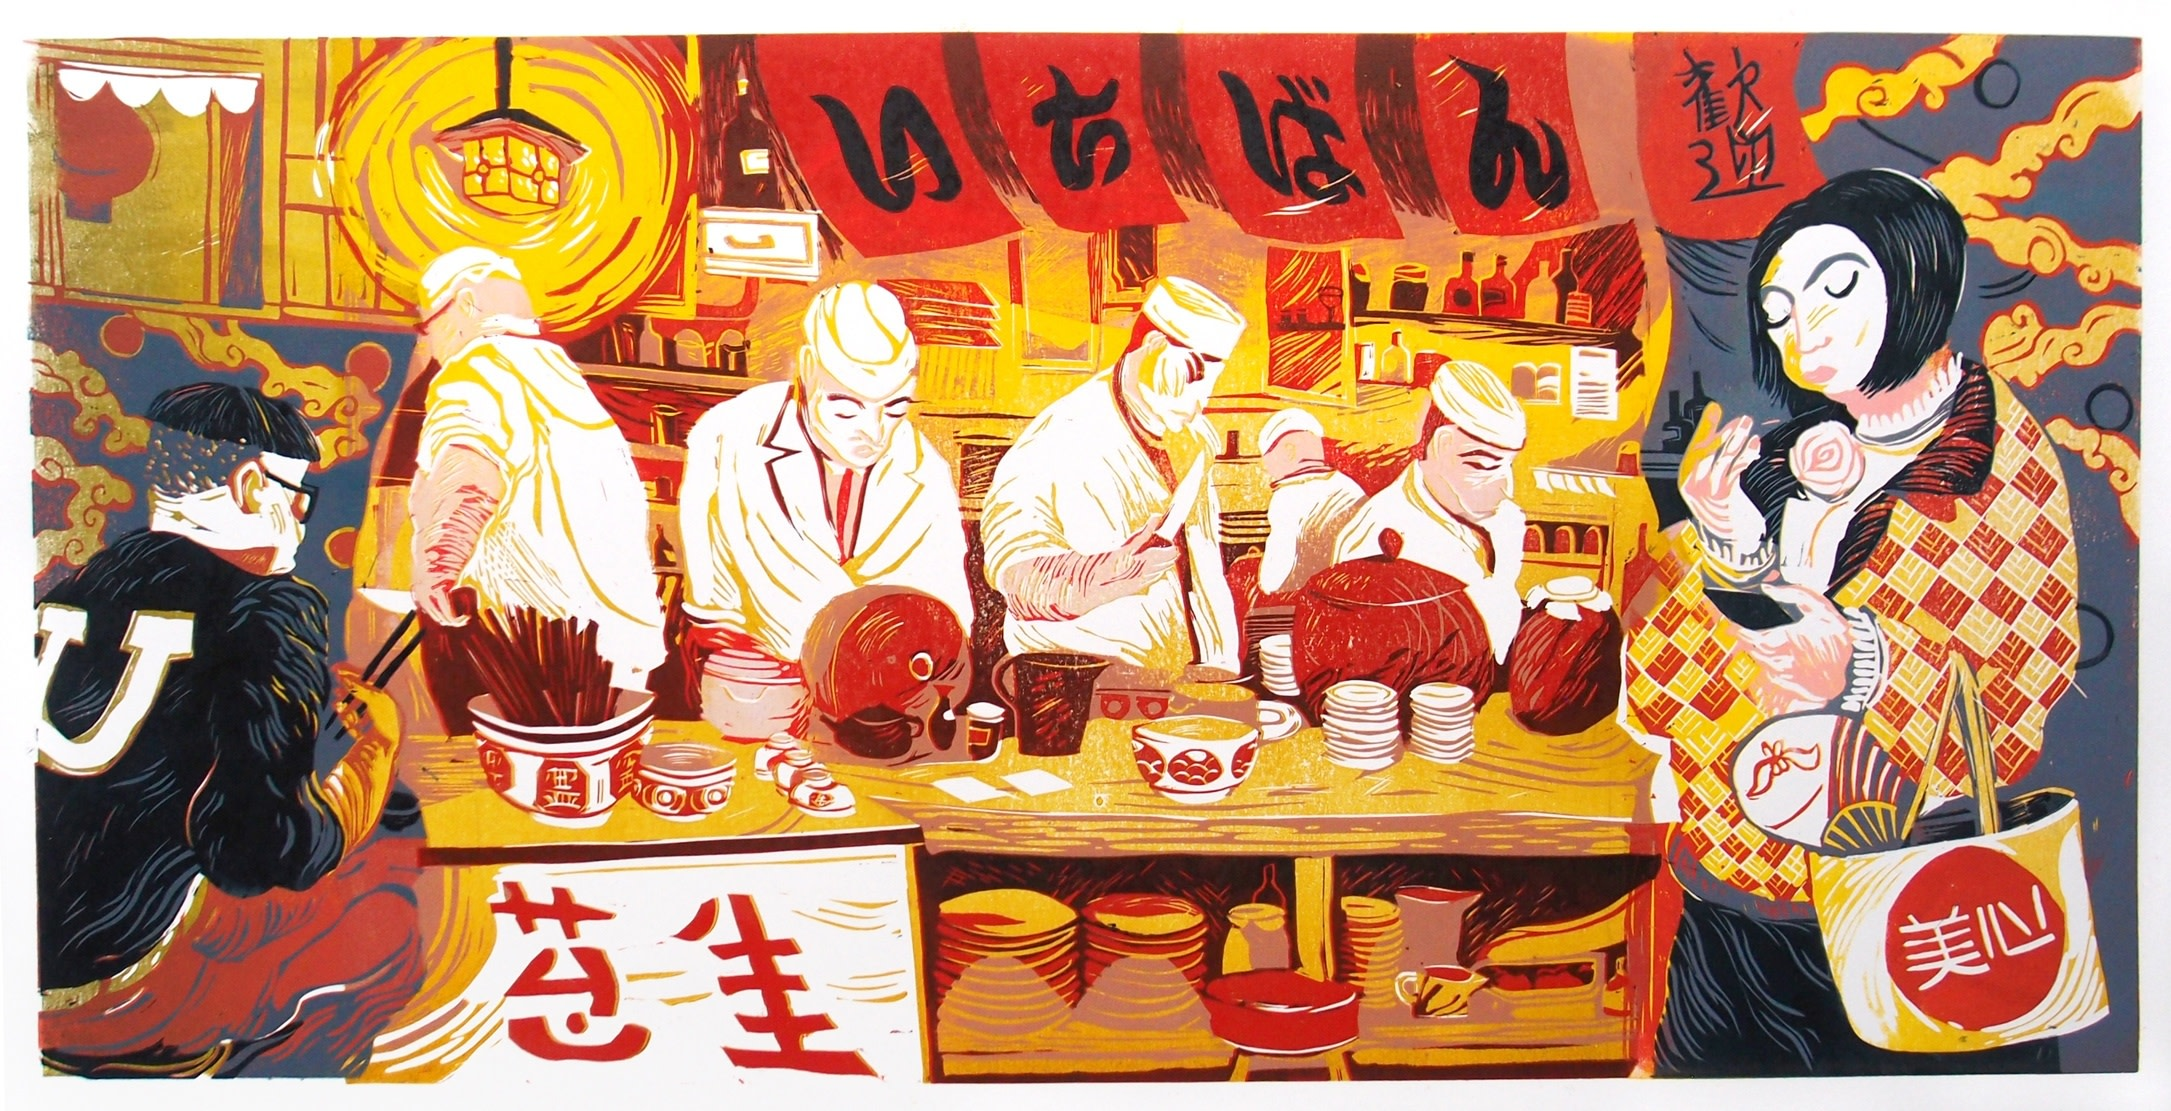 "<span class=""link fancybox-details-link""><a href=""/exhibitions/18/works/image_standalone953/"">View Detail Page</a></span><p>James Albon</p><p>Japanese Restaurant in Hong Kong</p><p>linocut</p><p>80 x 40cm</p><p>£800 framed</p><p>£700 unframed</p>"